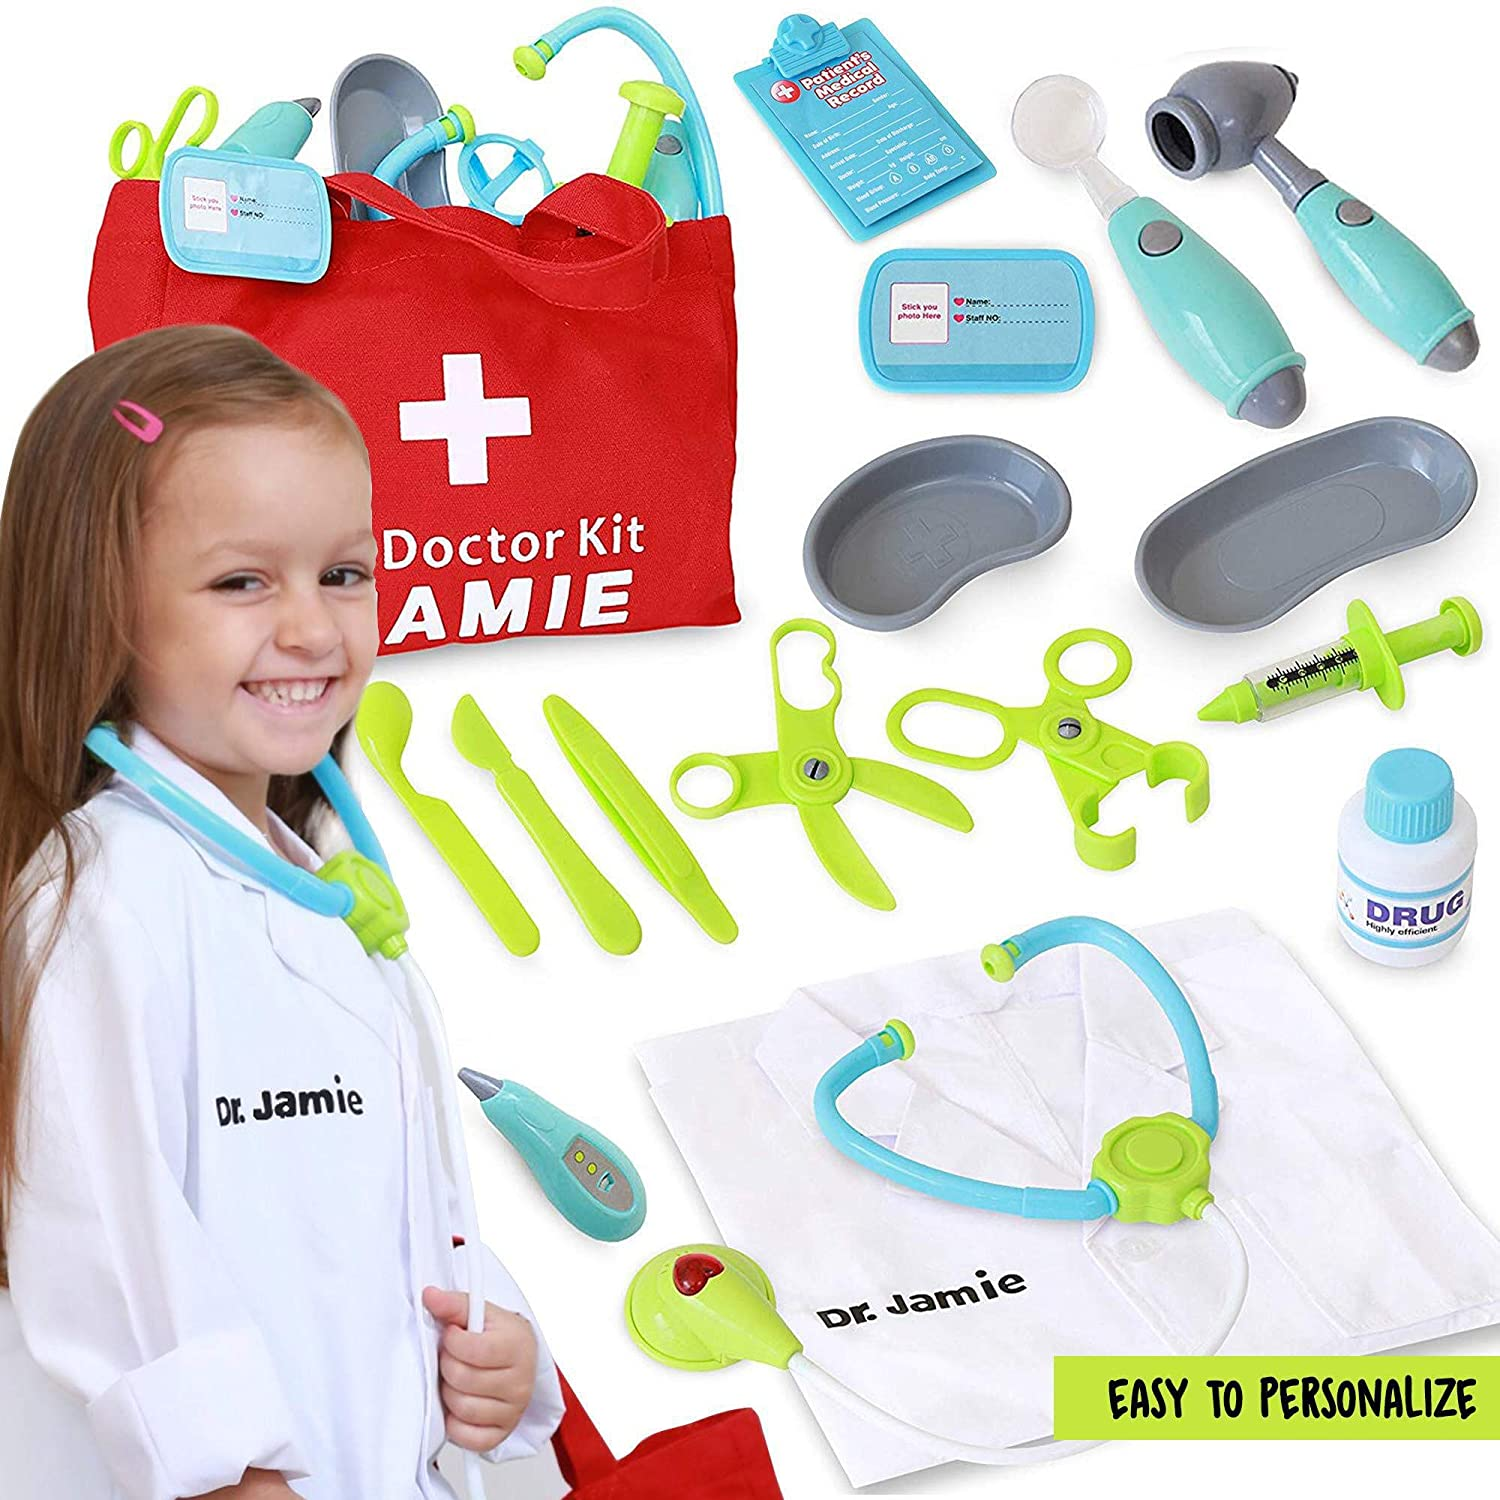 Top 12 Best Toy Doctor Kits (2020 Reviews & Buying Guide) 7